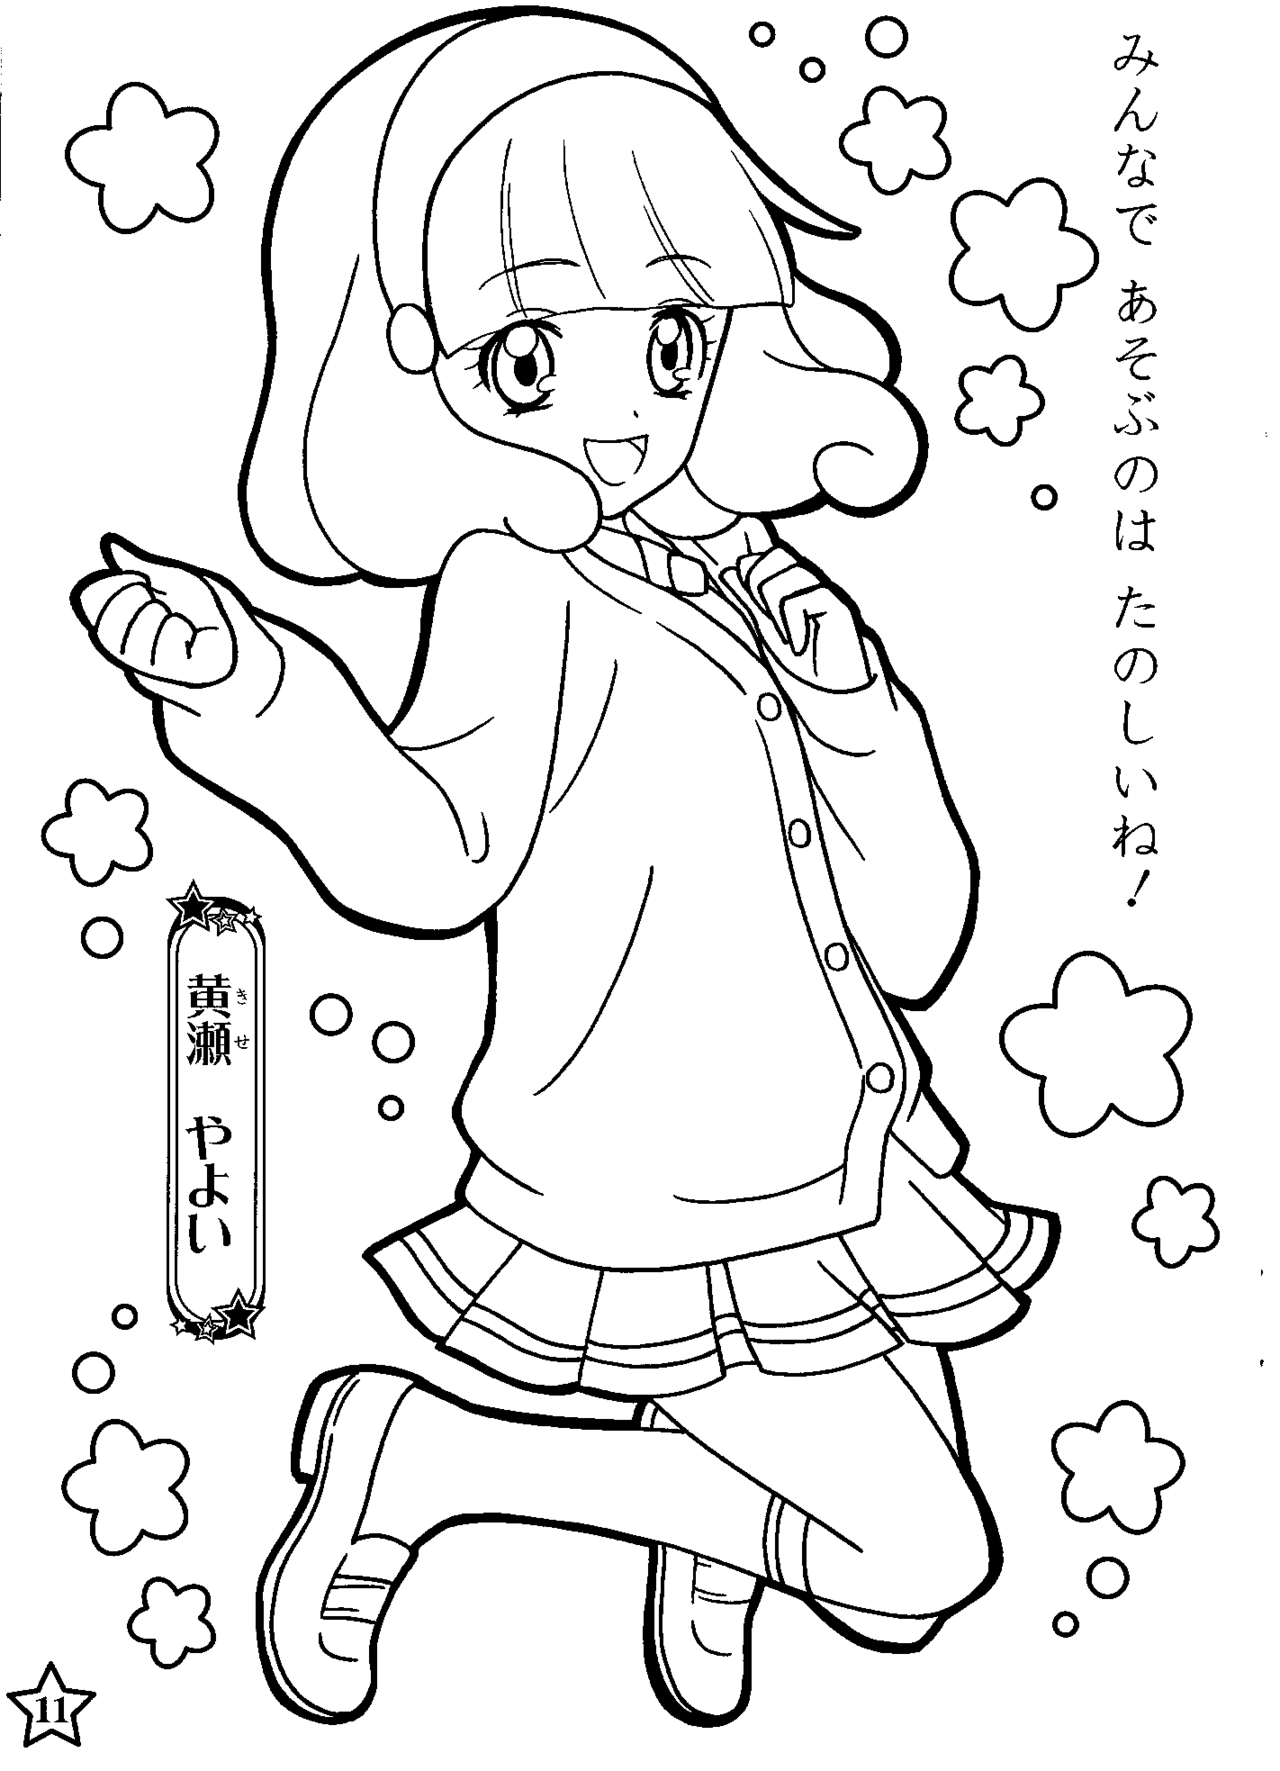 japanese zero coloring pages - photo#28